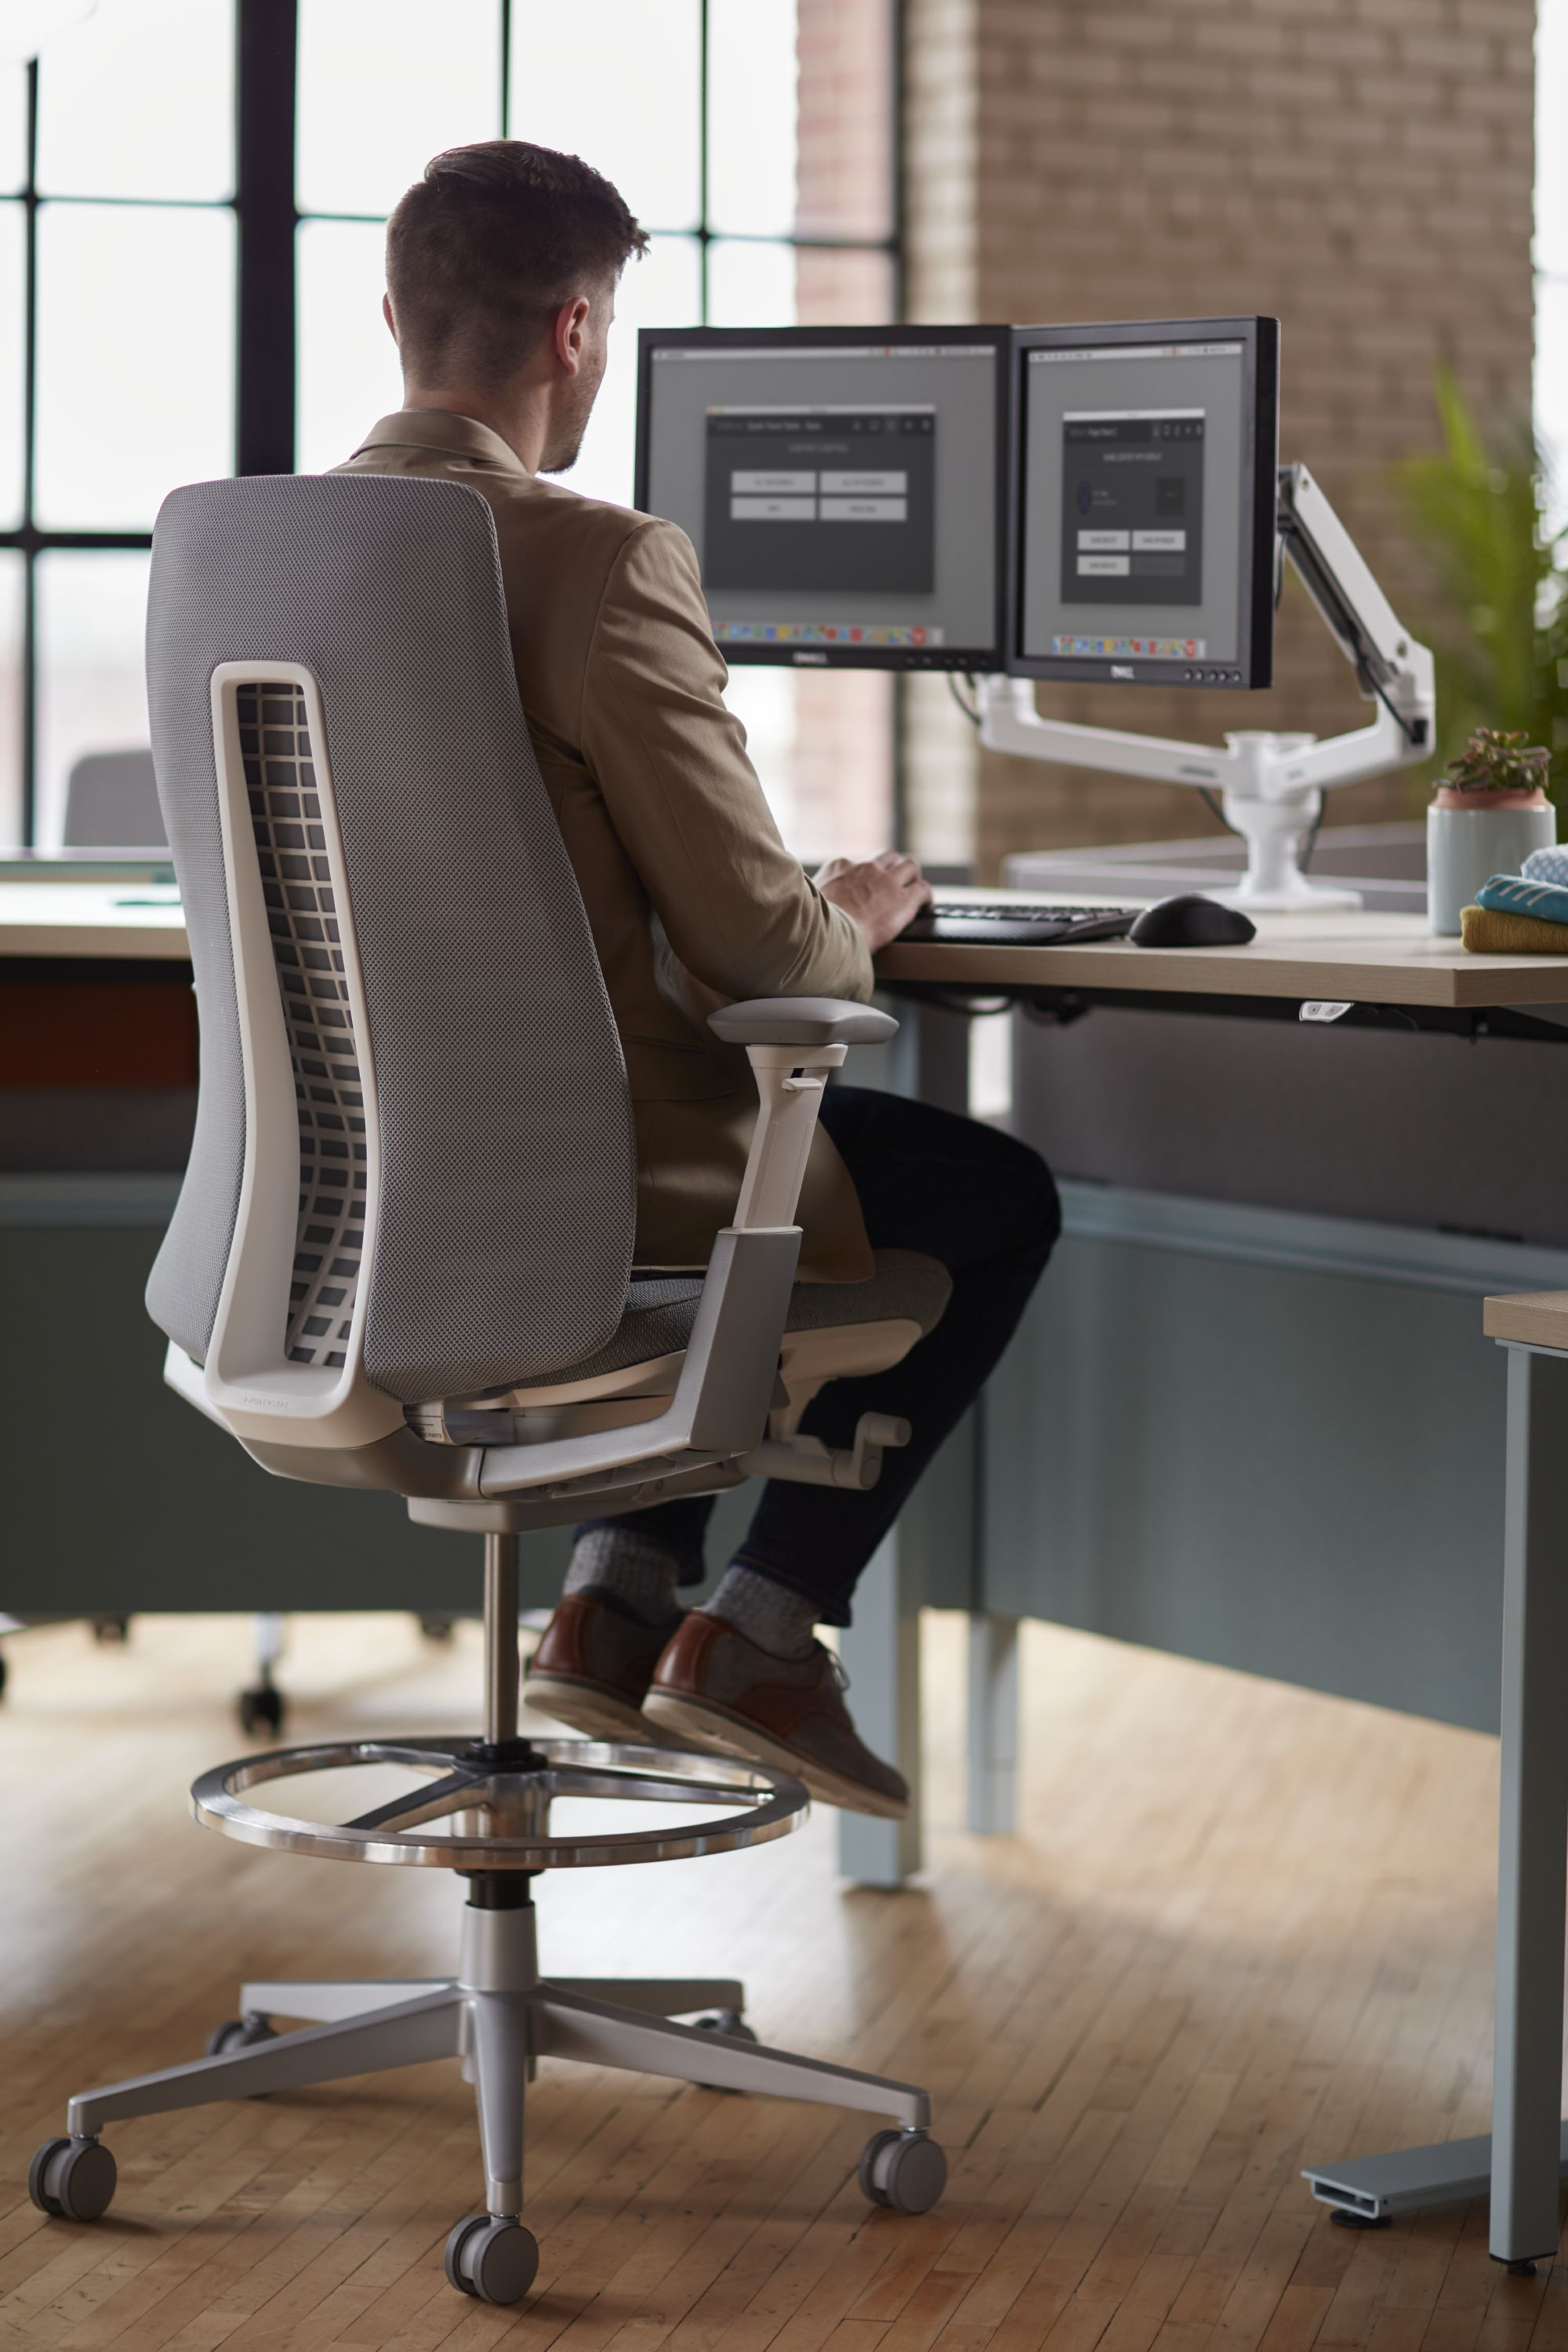 The Fern task chair, designed by Haworth Design Studio and ITO